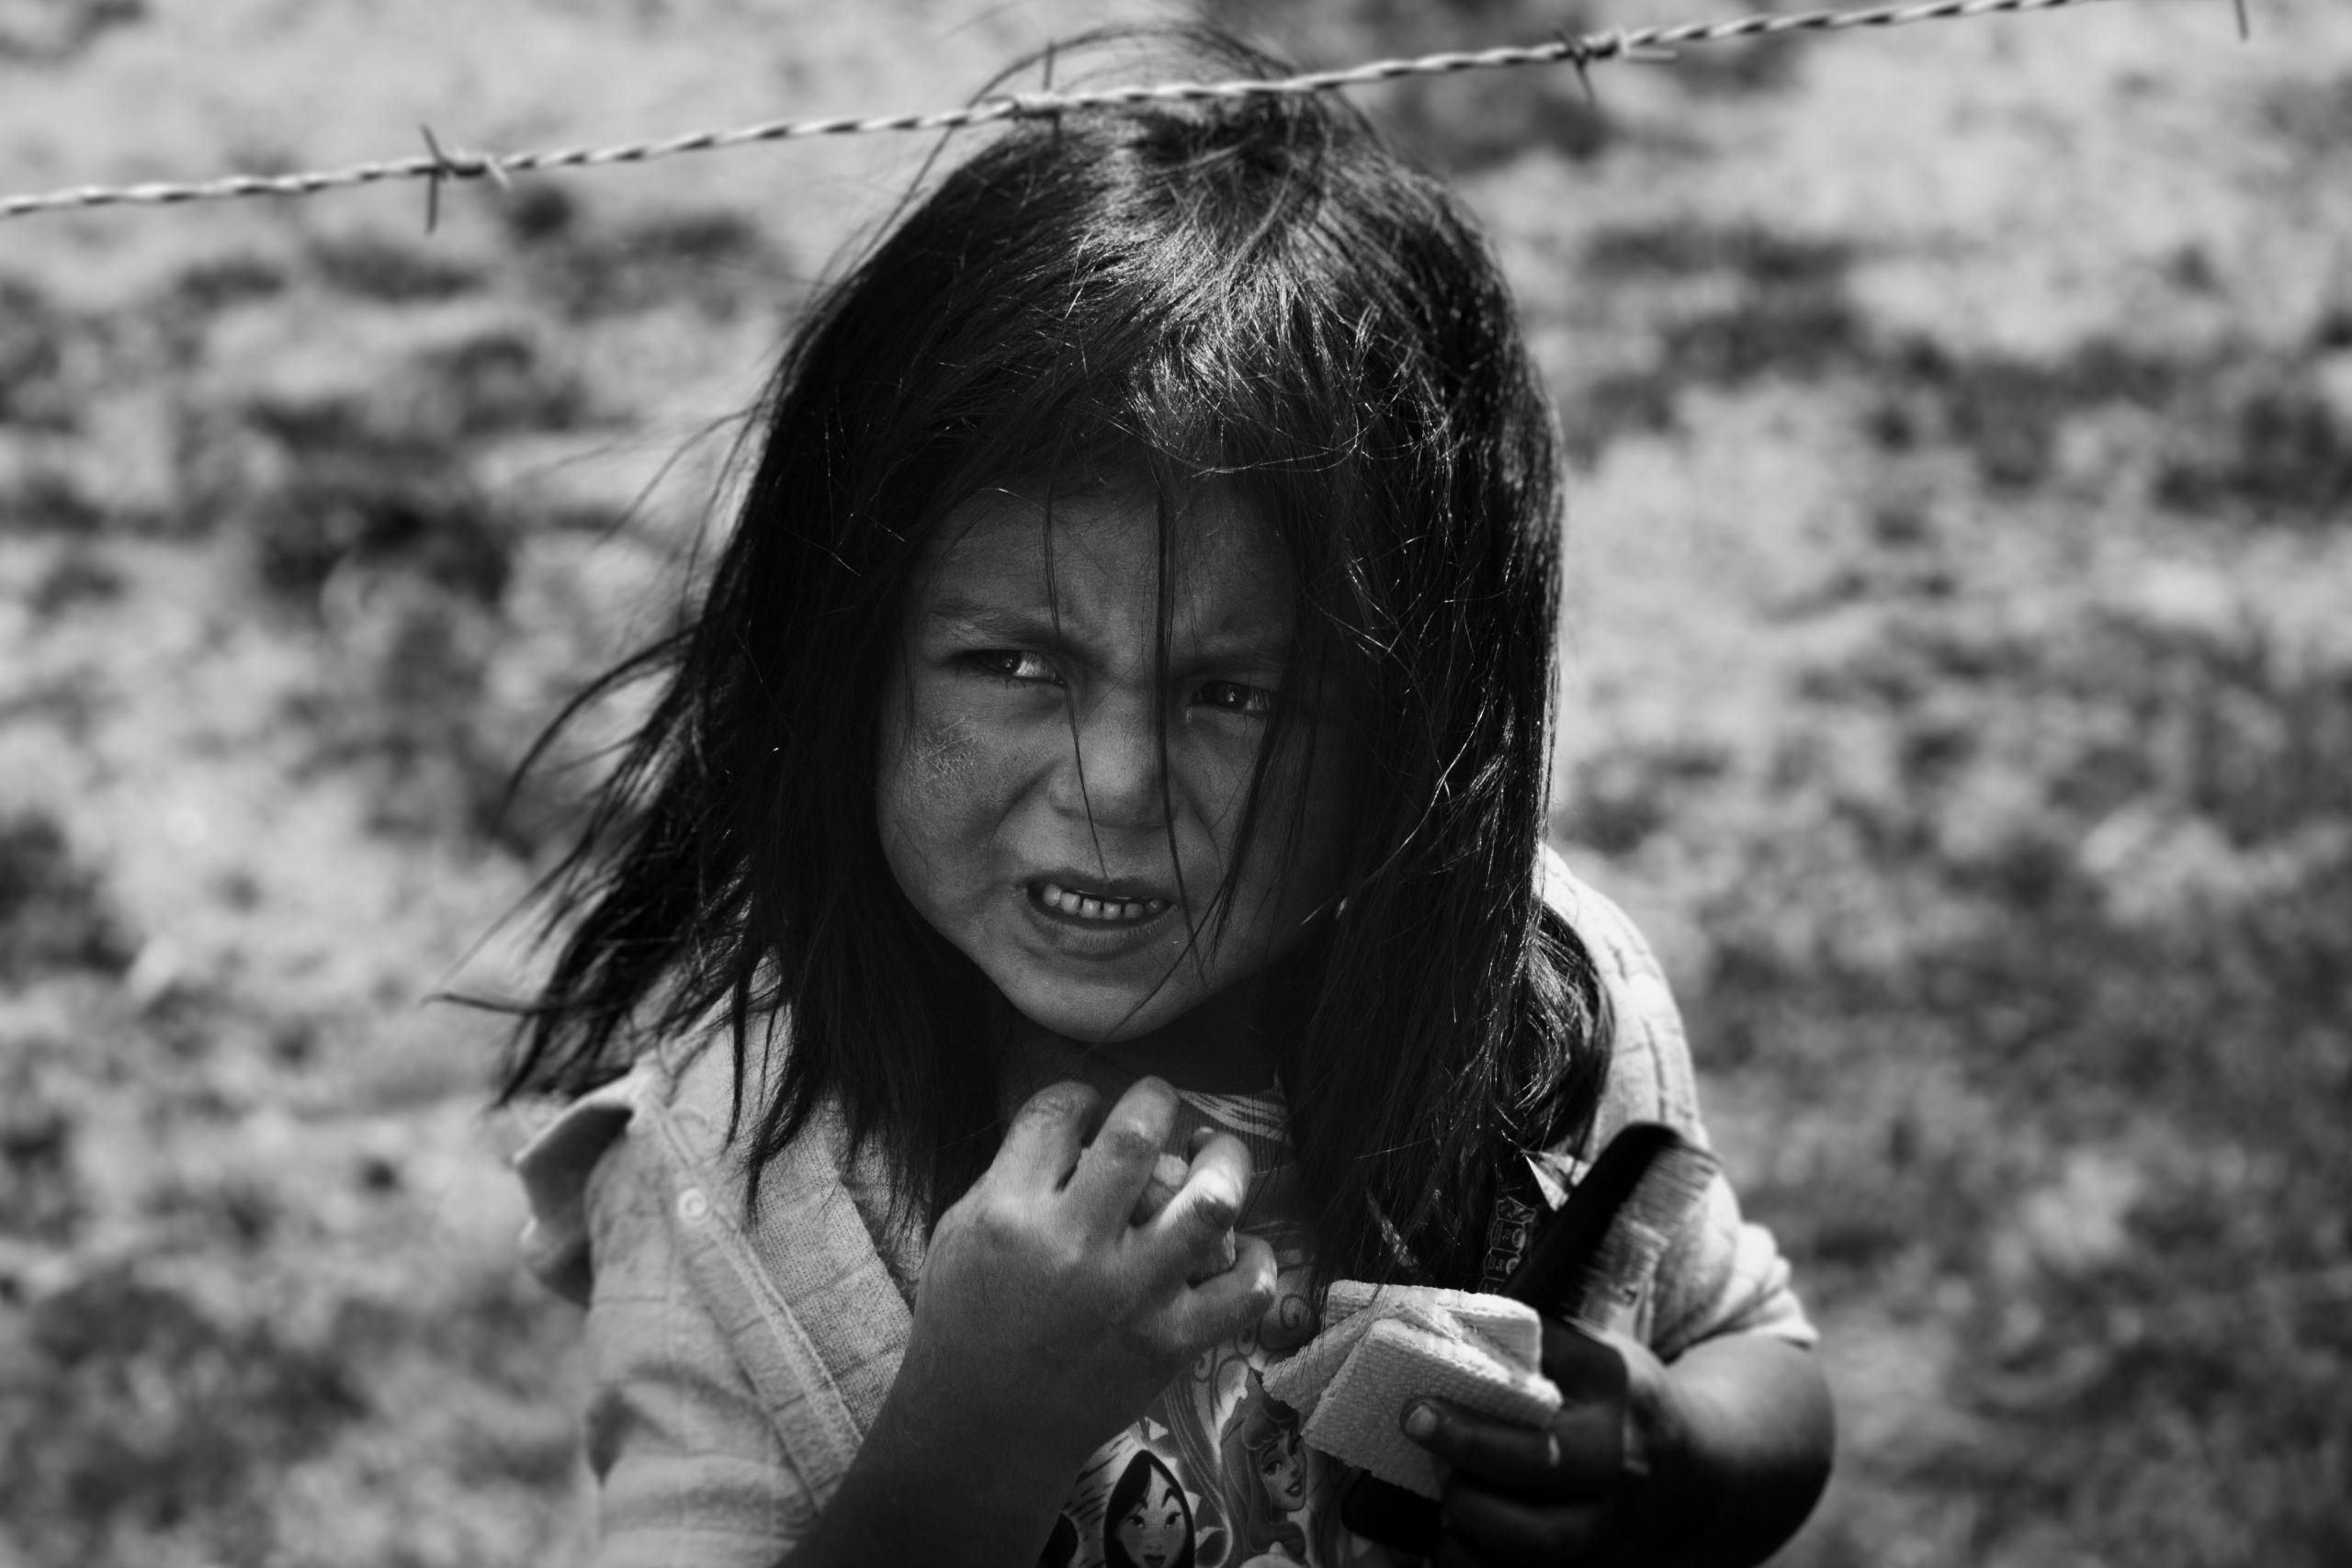 Young girl by barbed wire fencing